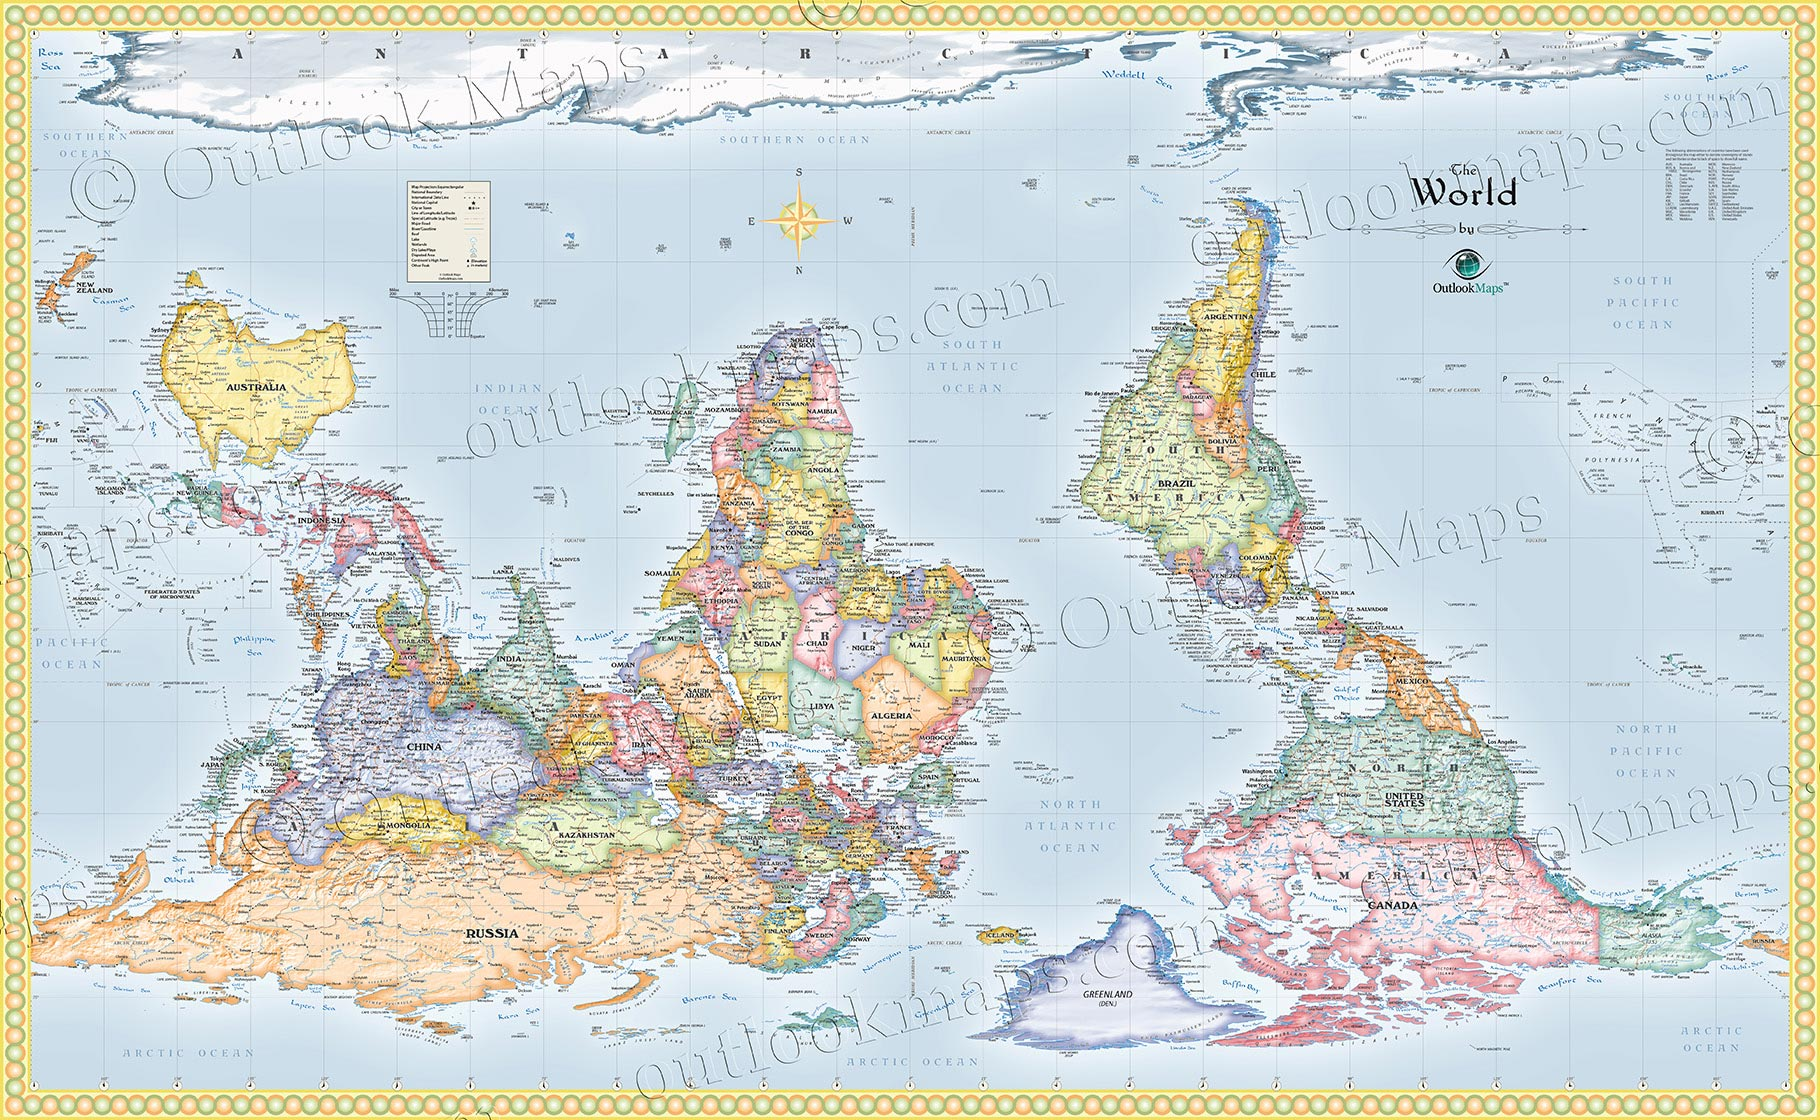 upside down world map standard political map style